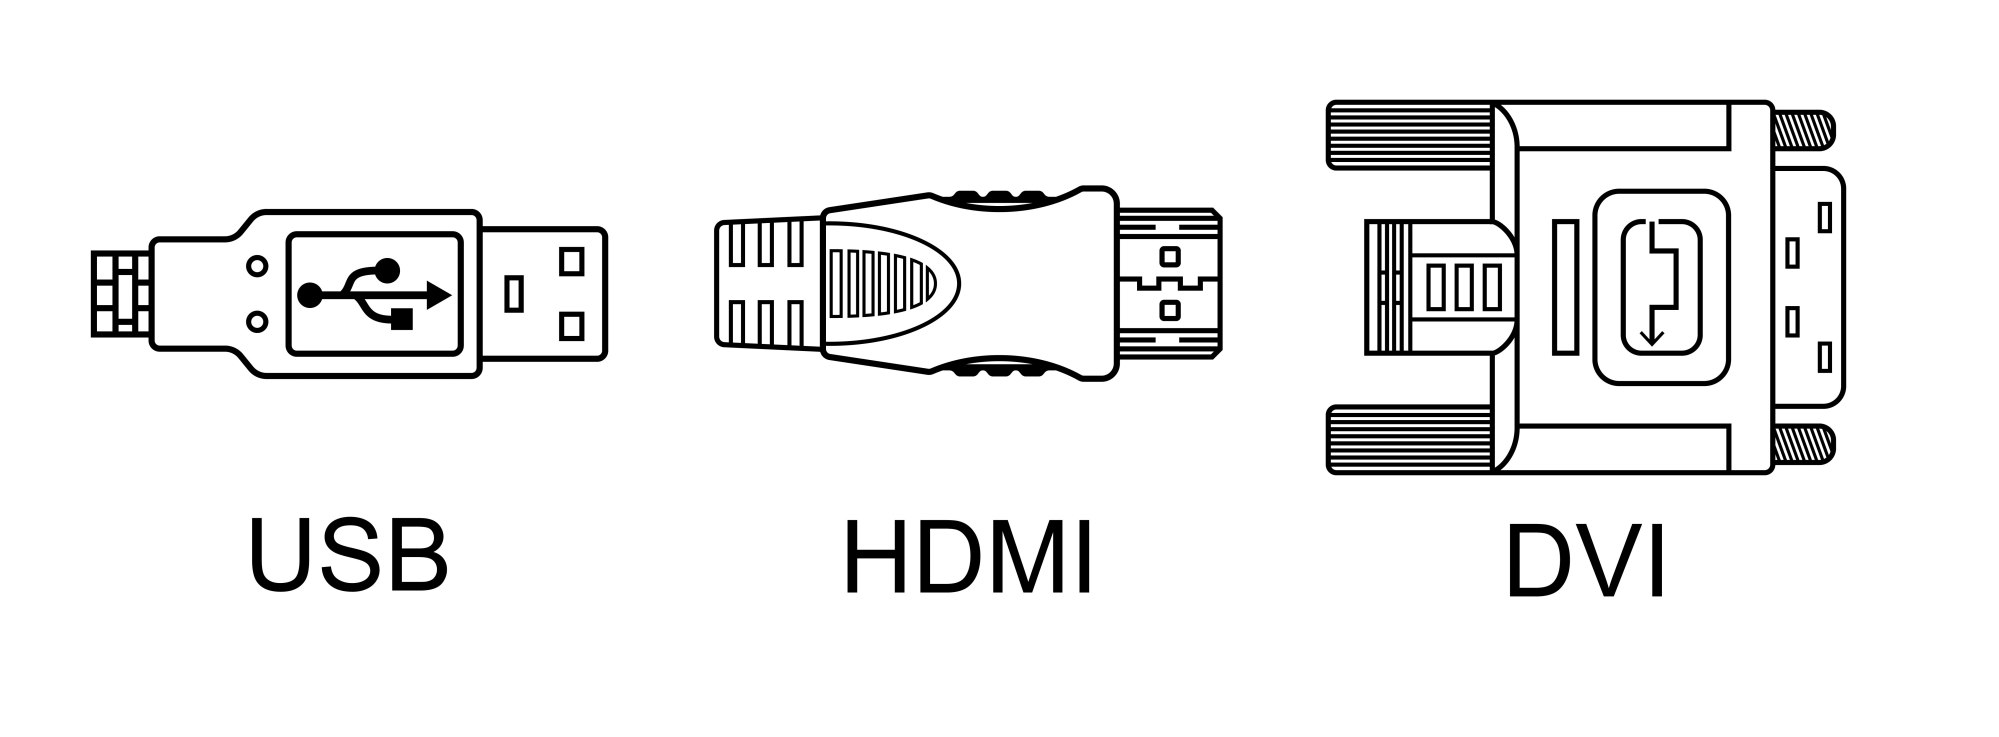 hight resolution of ports